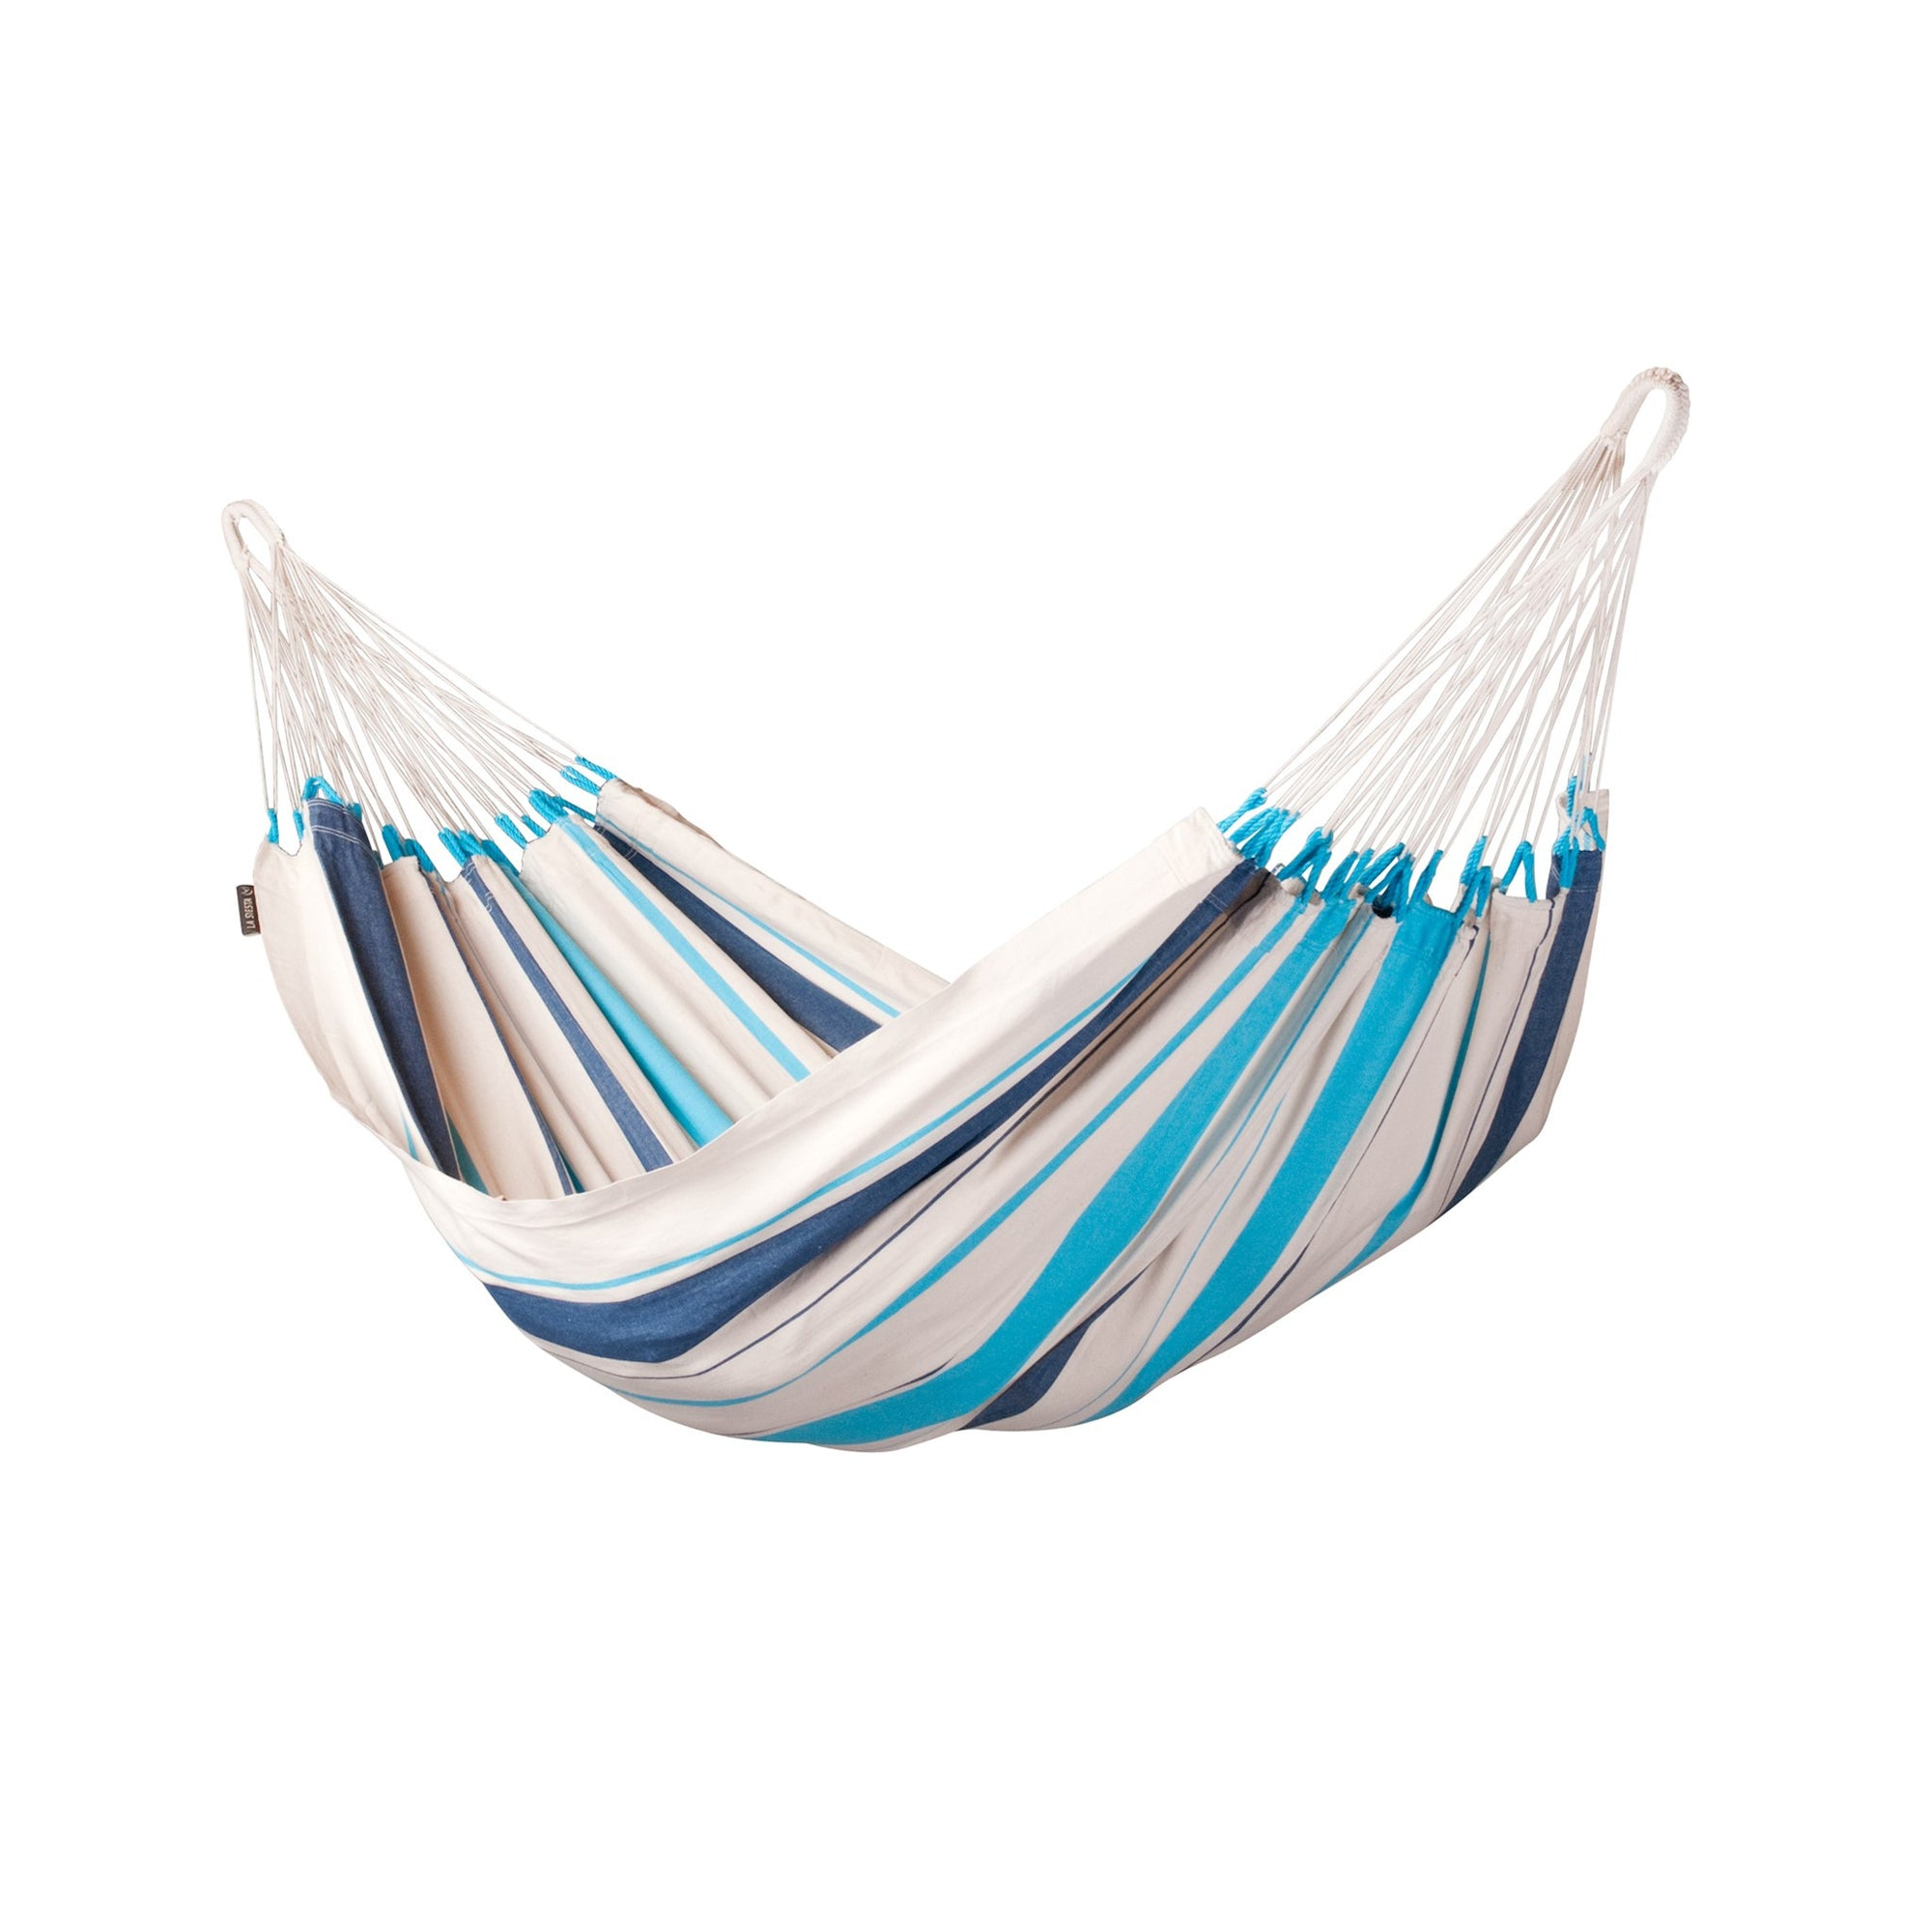 Caribeña Single Classic Hammock